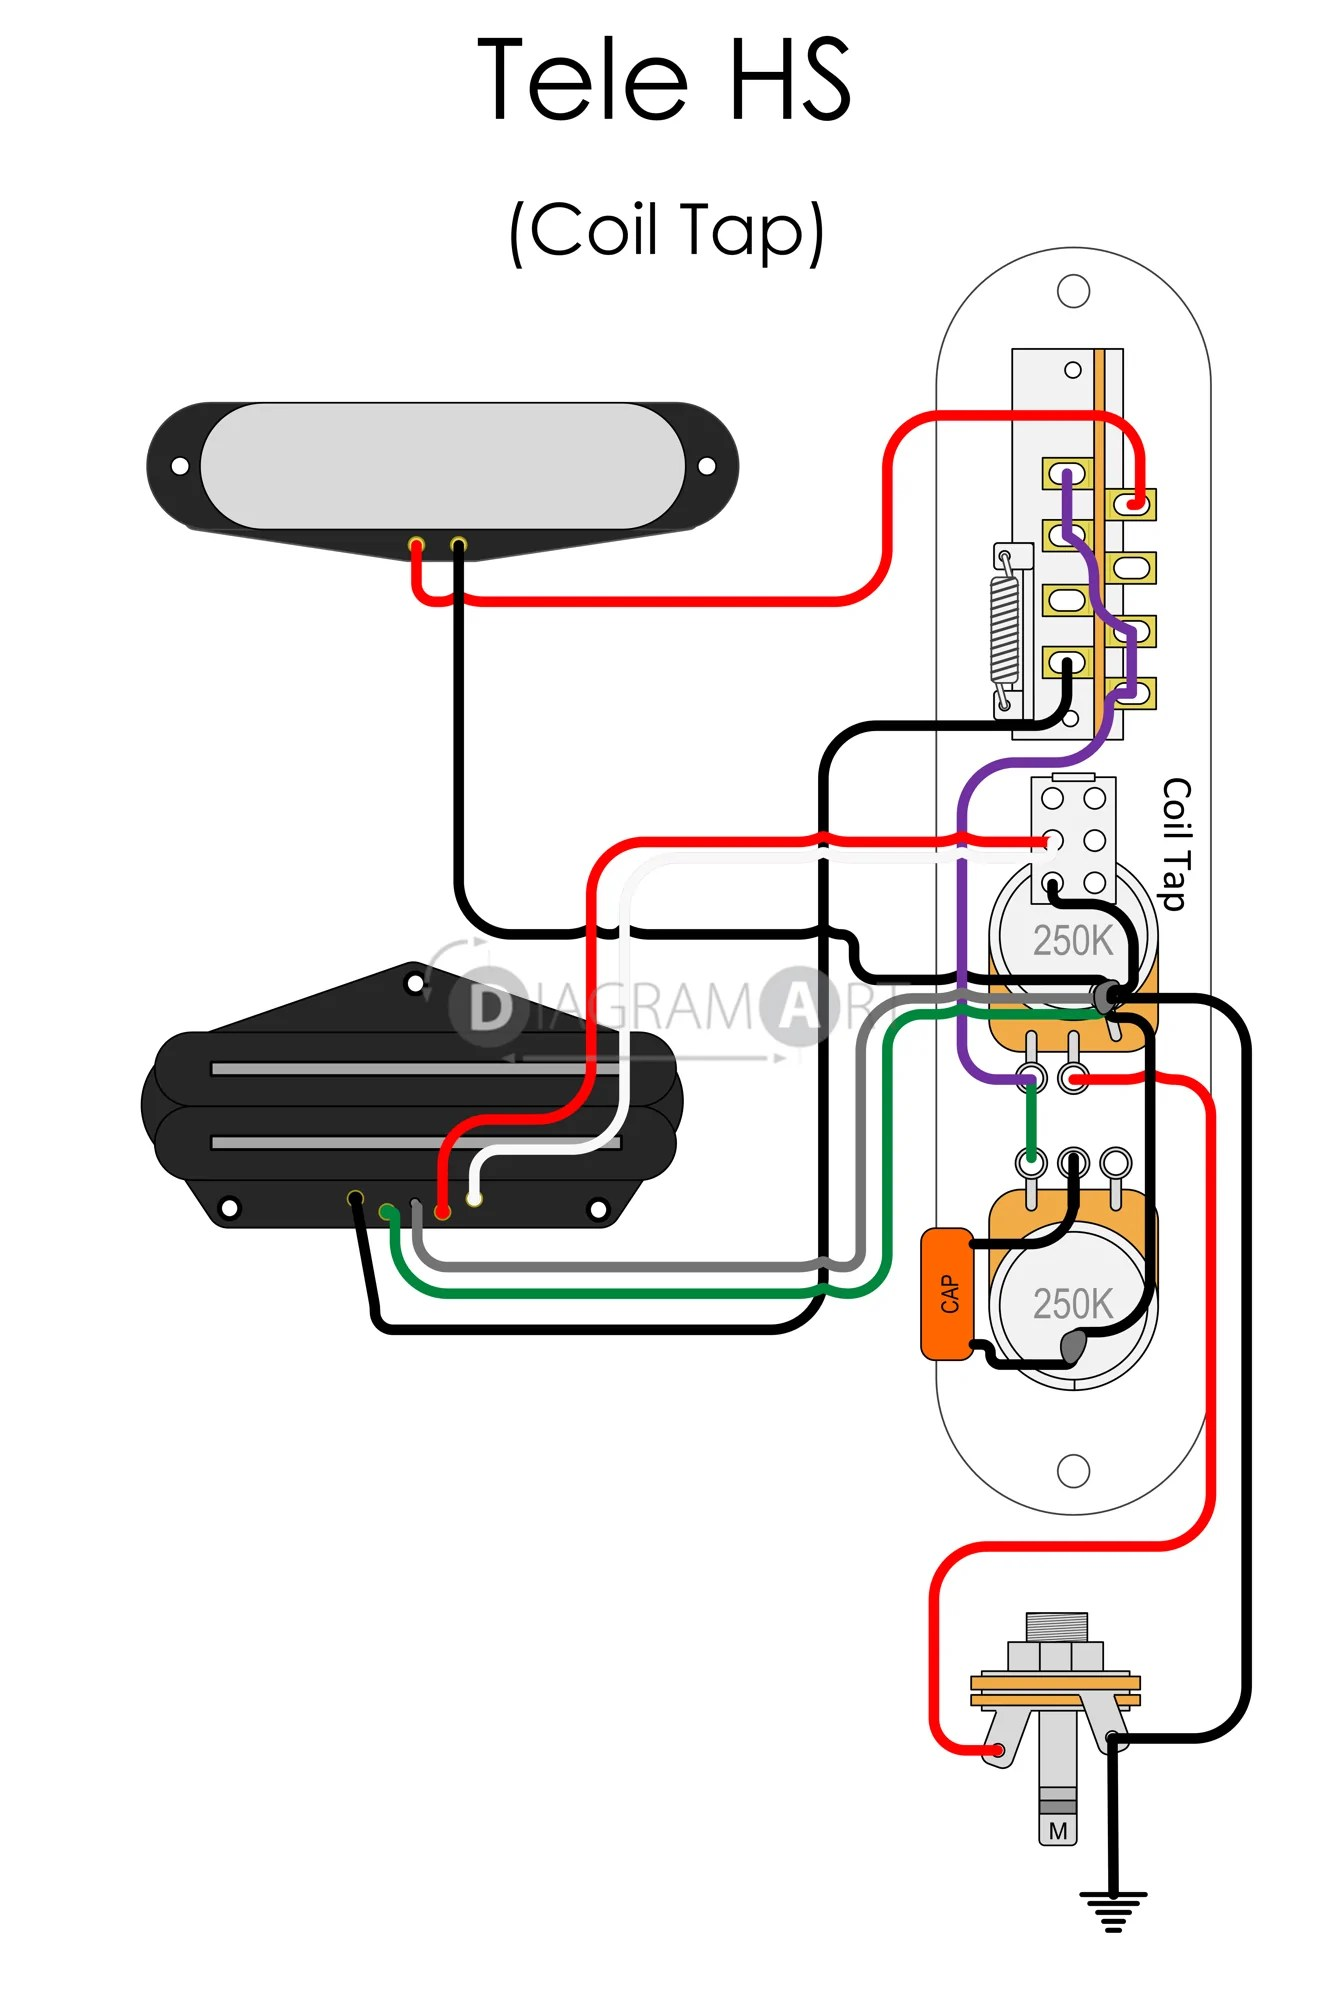 guitar wiring diagrams coil split american standard strat diagram seymour duncan best library electric tele hs tap circuit rh diagramart com 1 humbucker volume